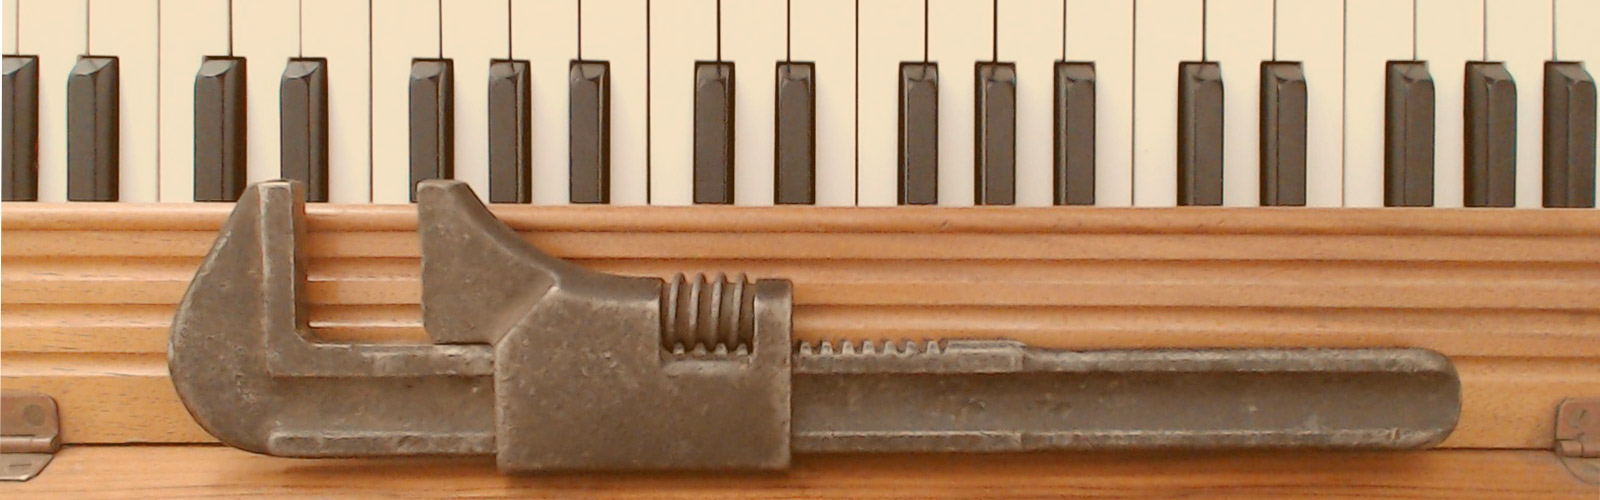 Playing an instrument – the importance of basics